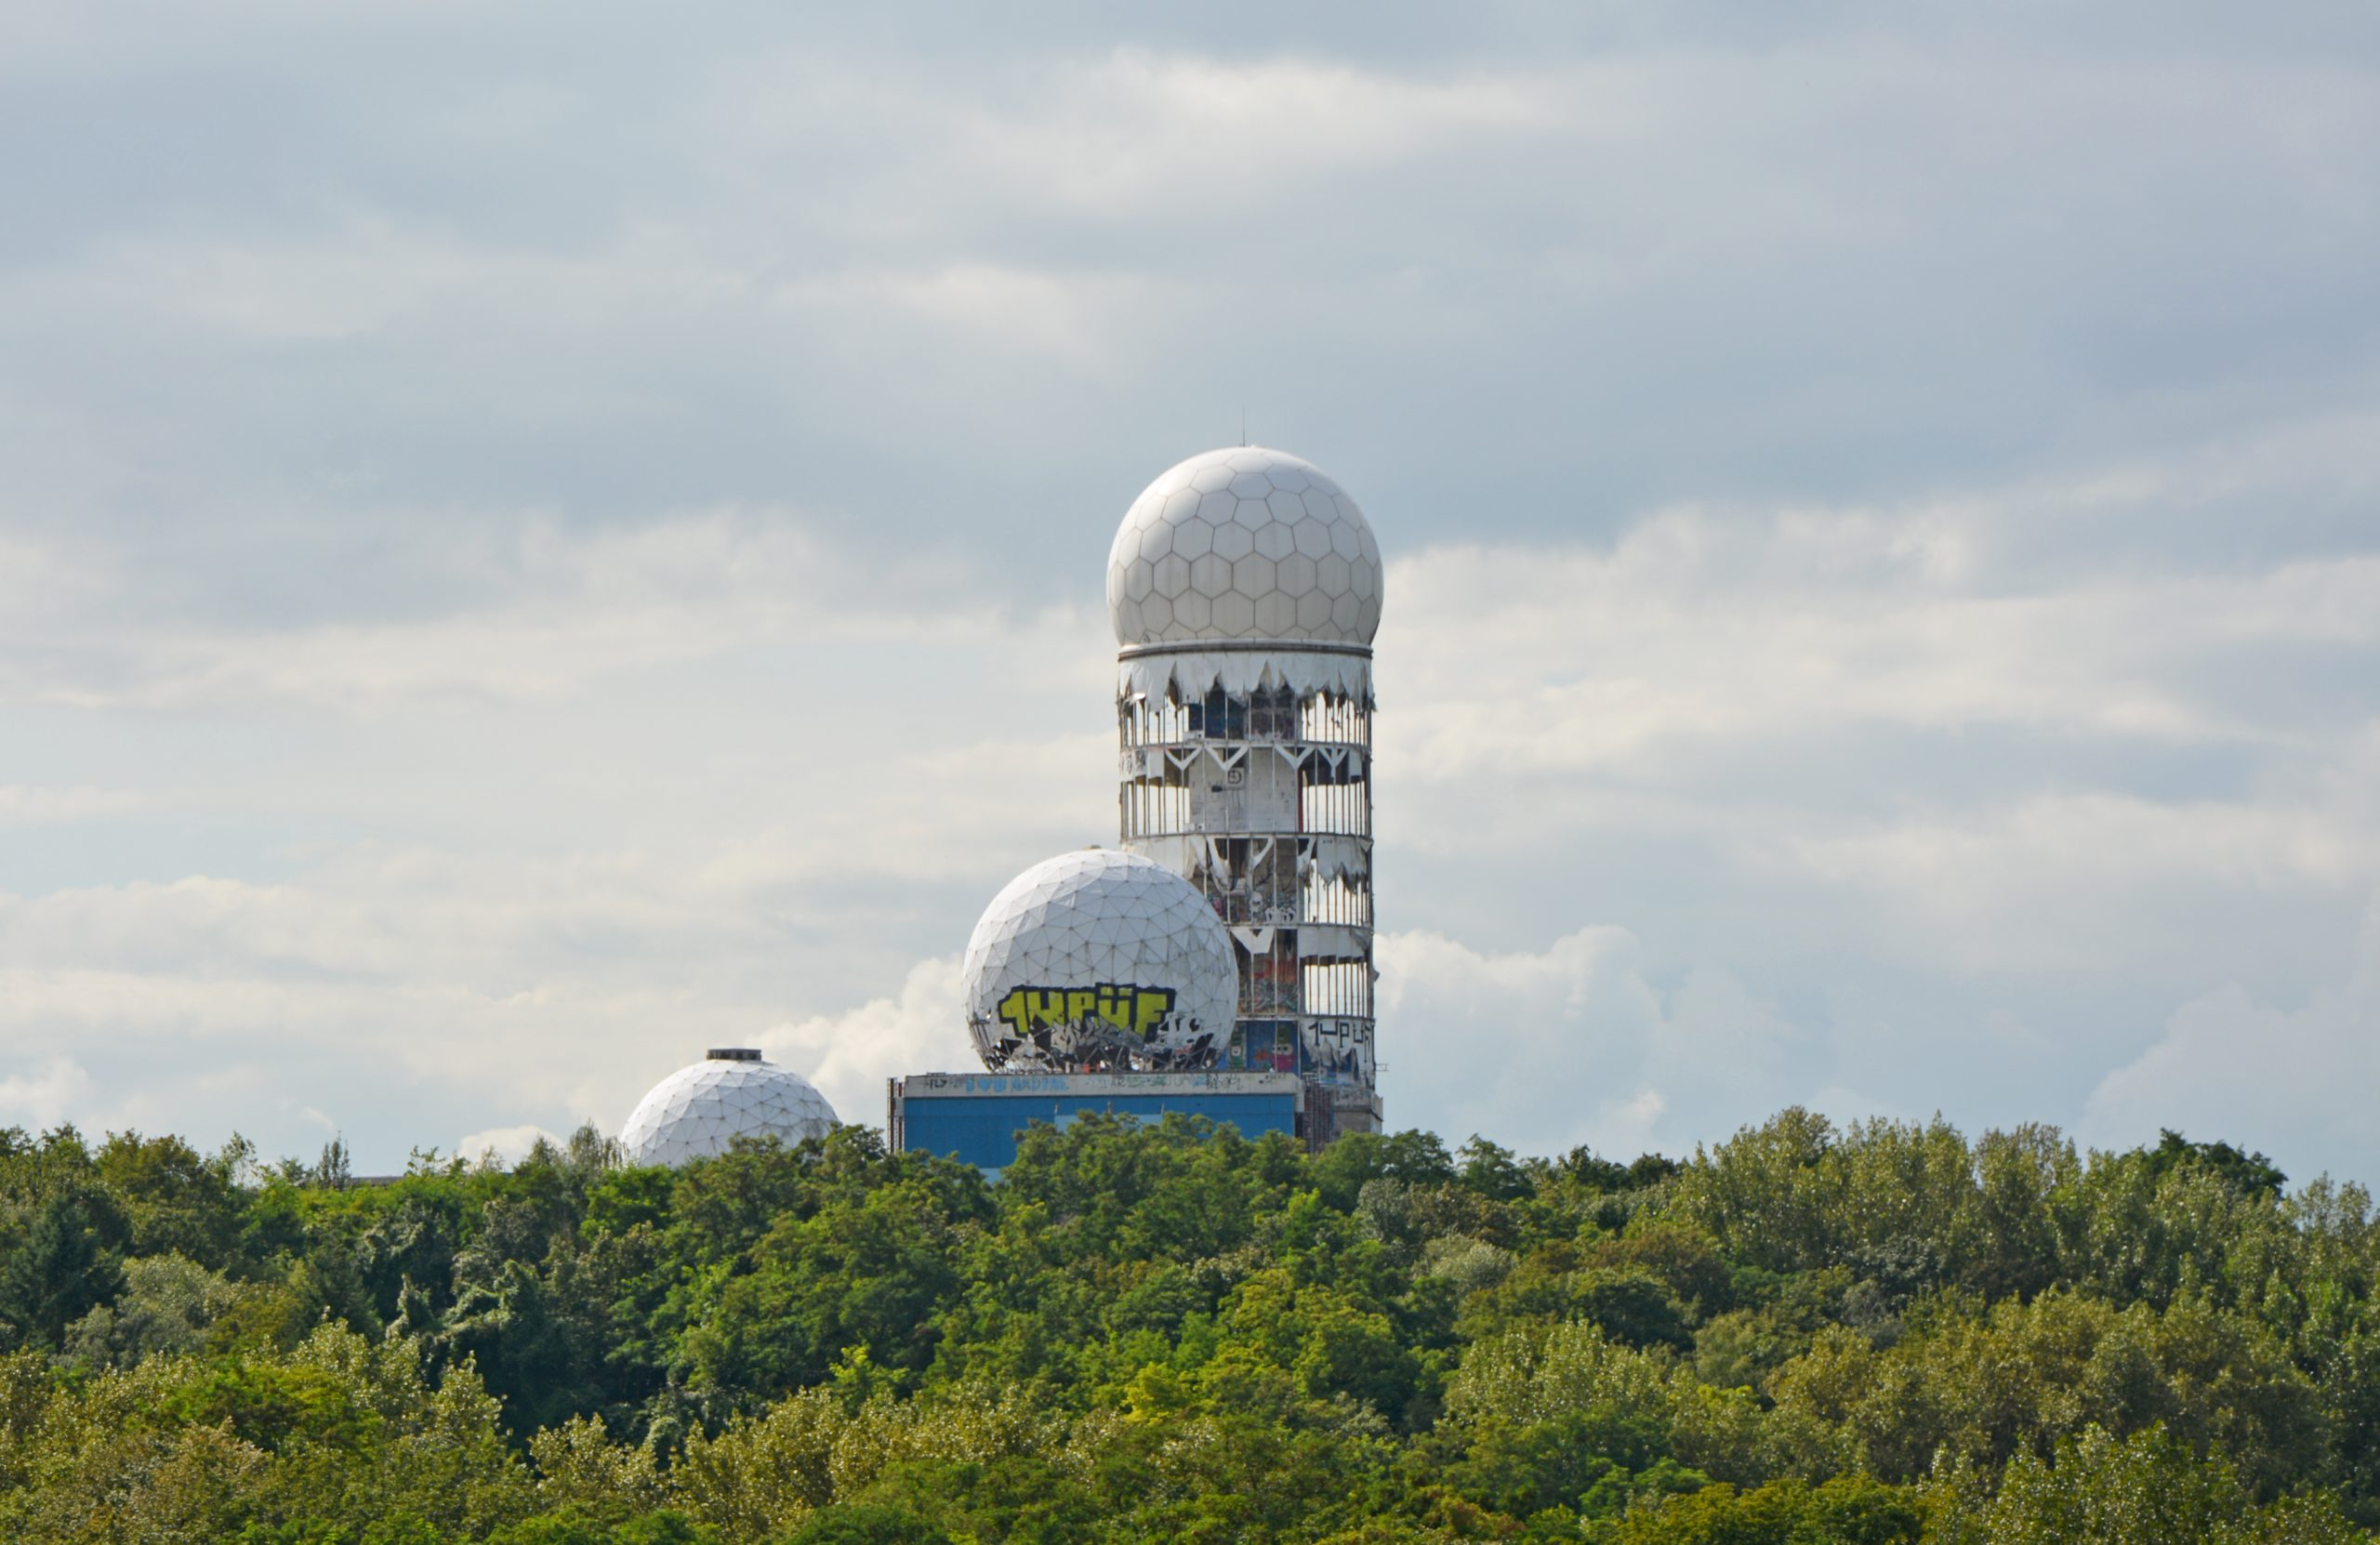 Abandoned Berlin abandoned places NSA Spy base teufelsberg